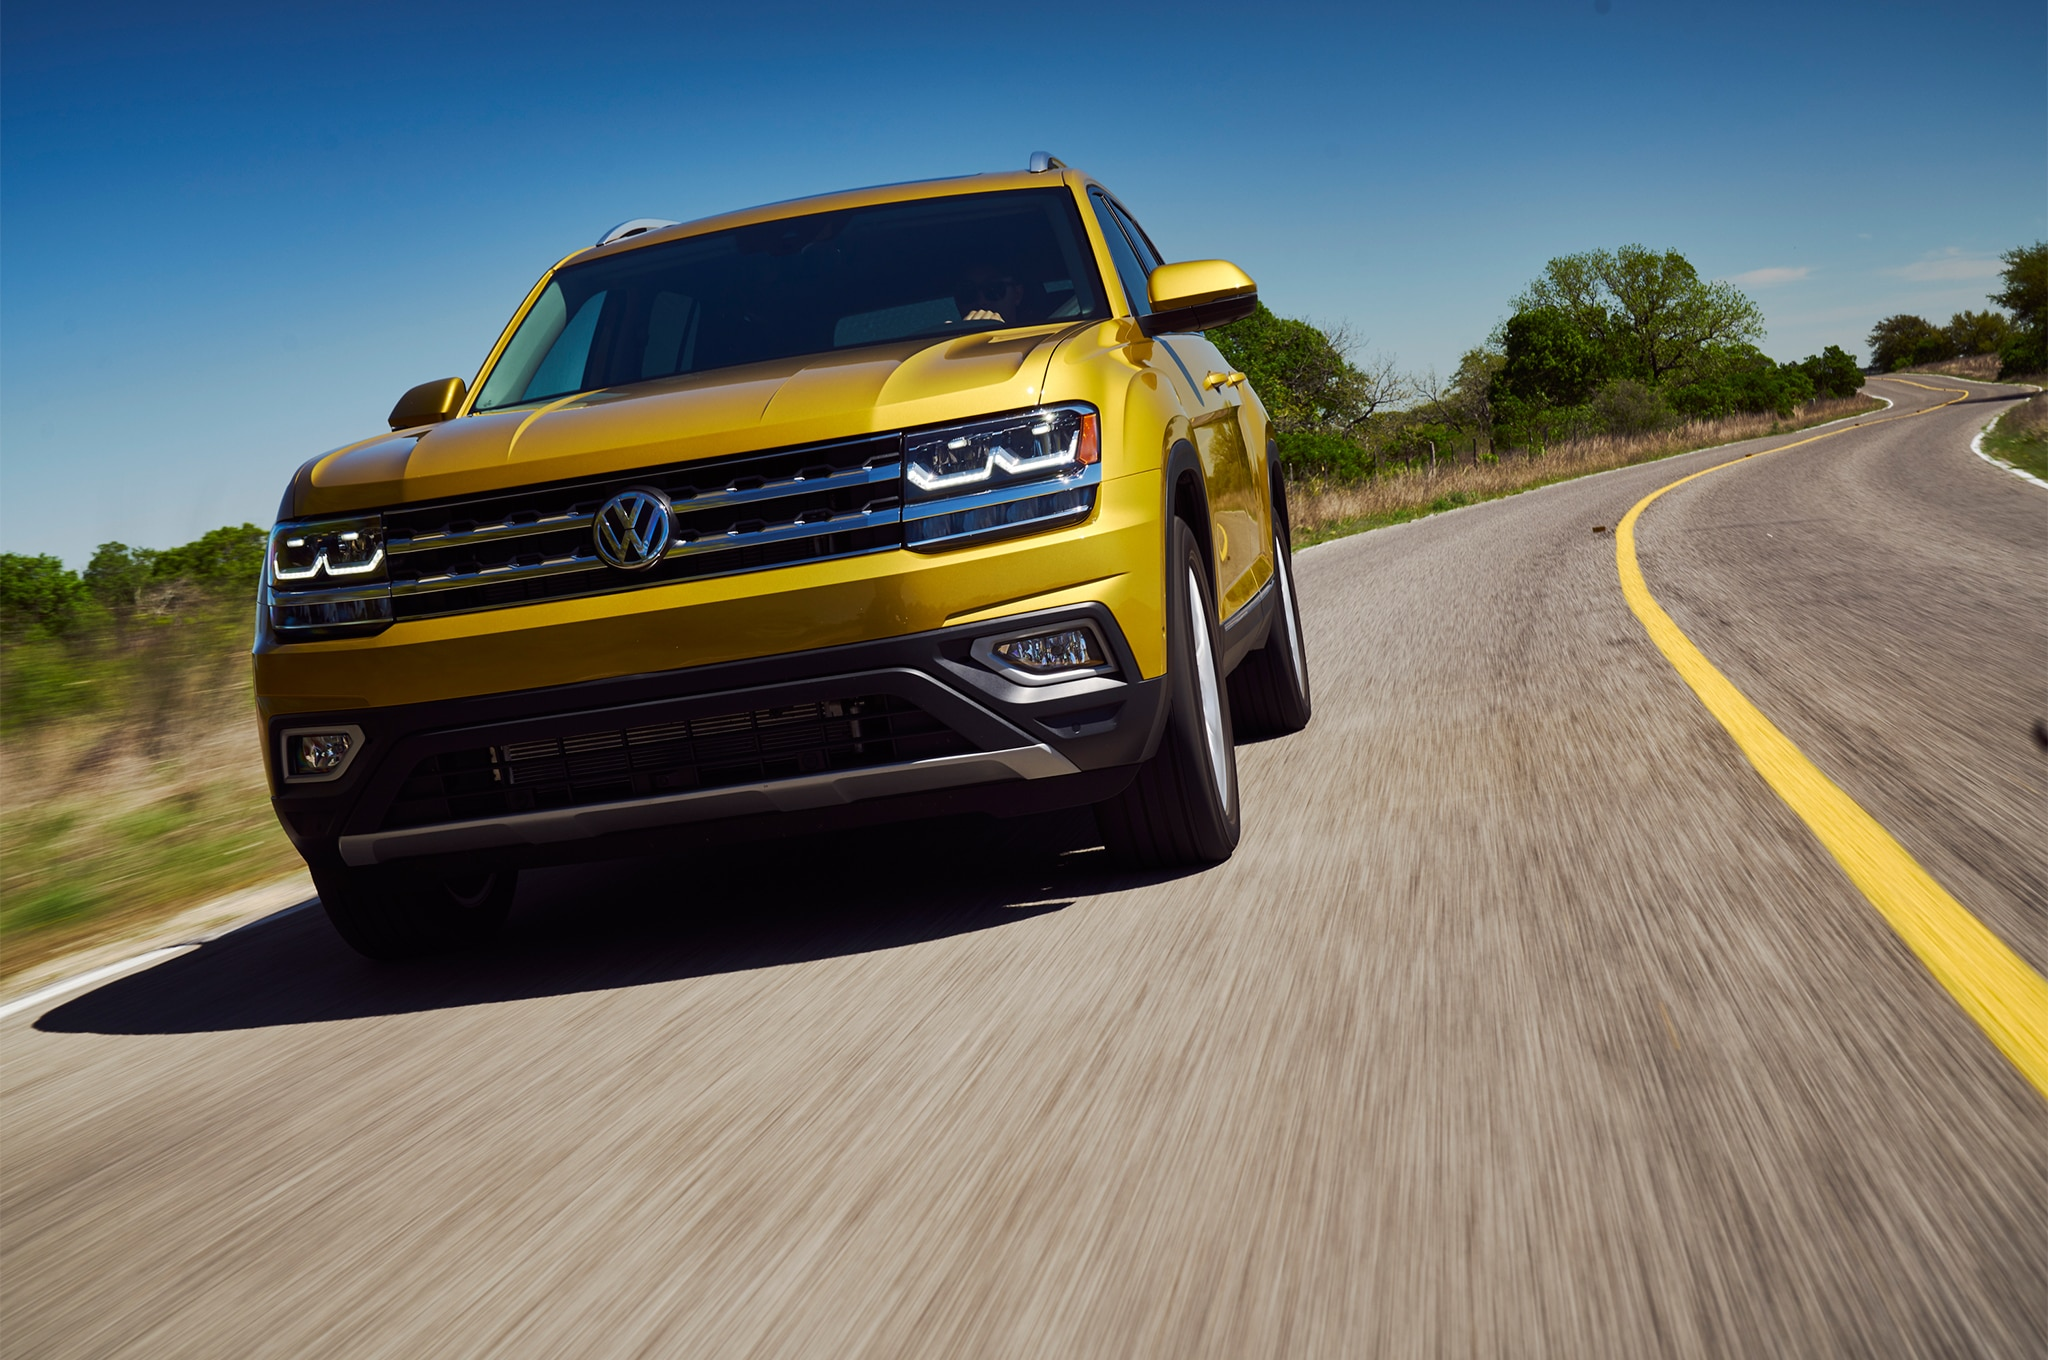 2018 Volkswagen Atlas Front Three Quarter In Motion 05 6